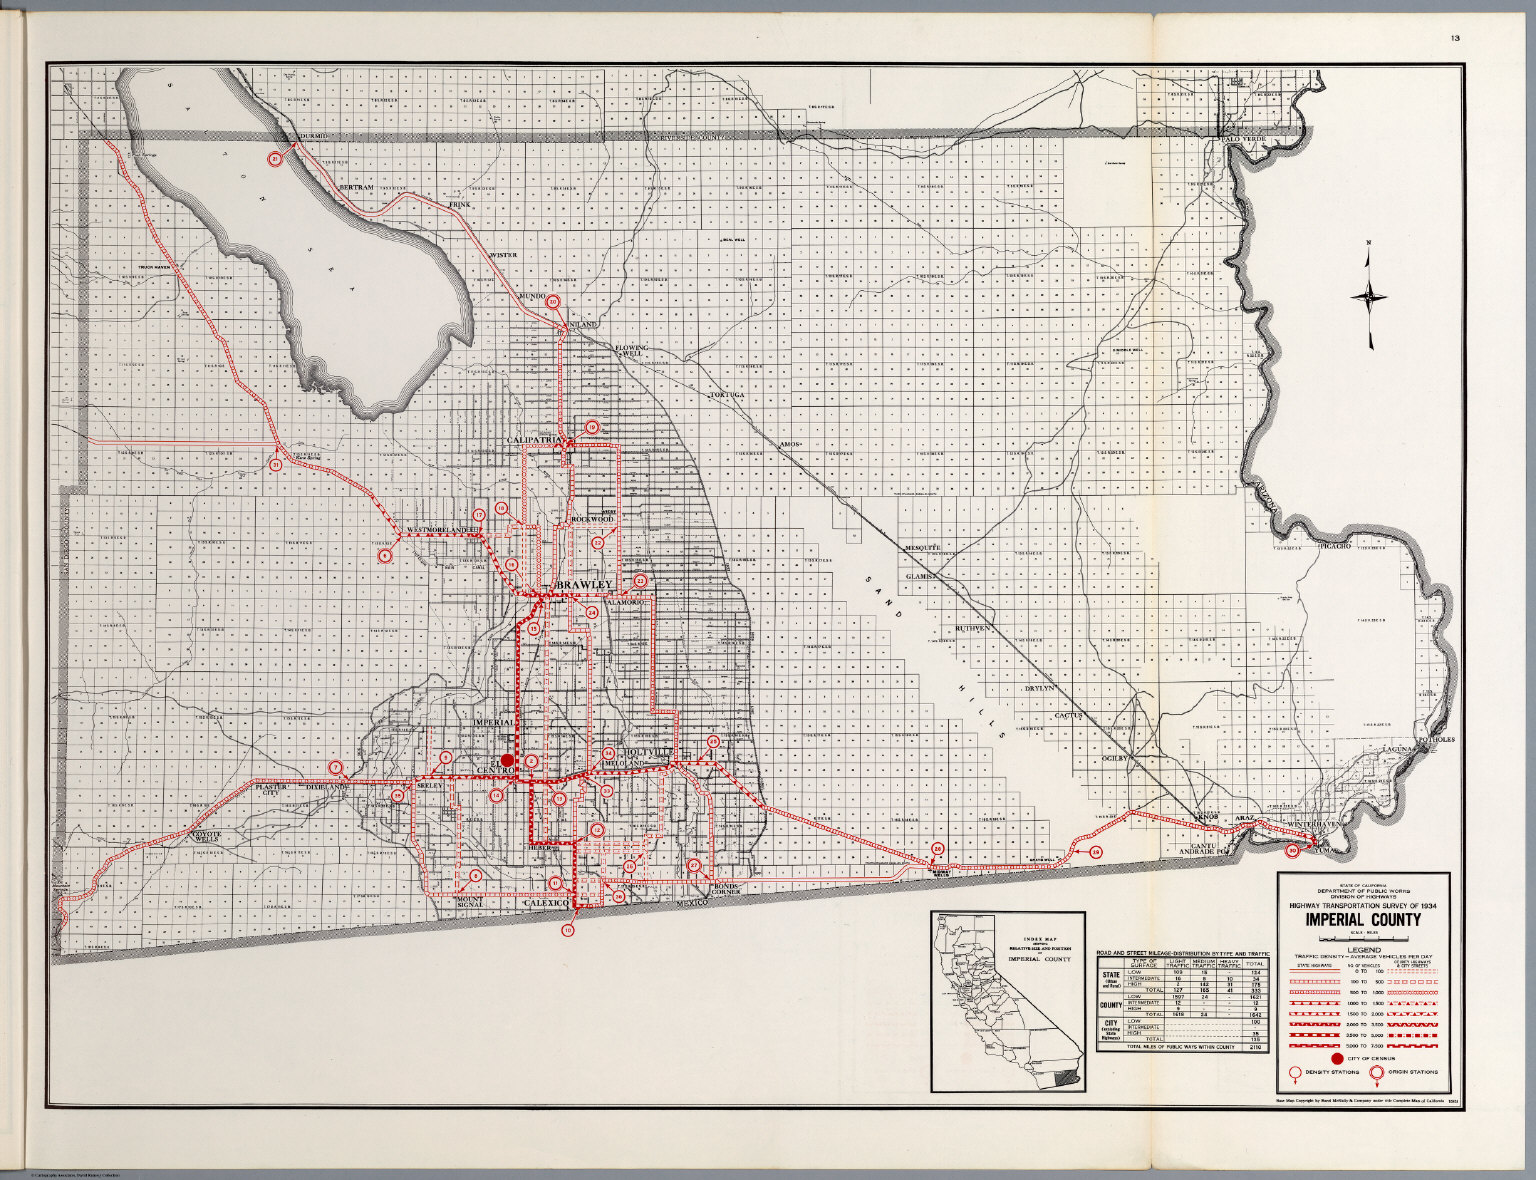 Imperial County. - David Rumsey Historical Map Collection on map of southeast ia, map ohio county, map of cerritos, map of salt river, map of east idaho, map of gold country, map of the inland empire, map of salvation mountain, map of north shore, map of san francisco bay, map of ripley, map nebraska county, map of ocotillo, map of heber, map of silicon valley,